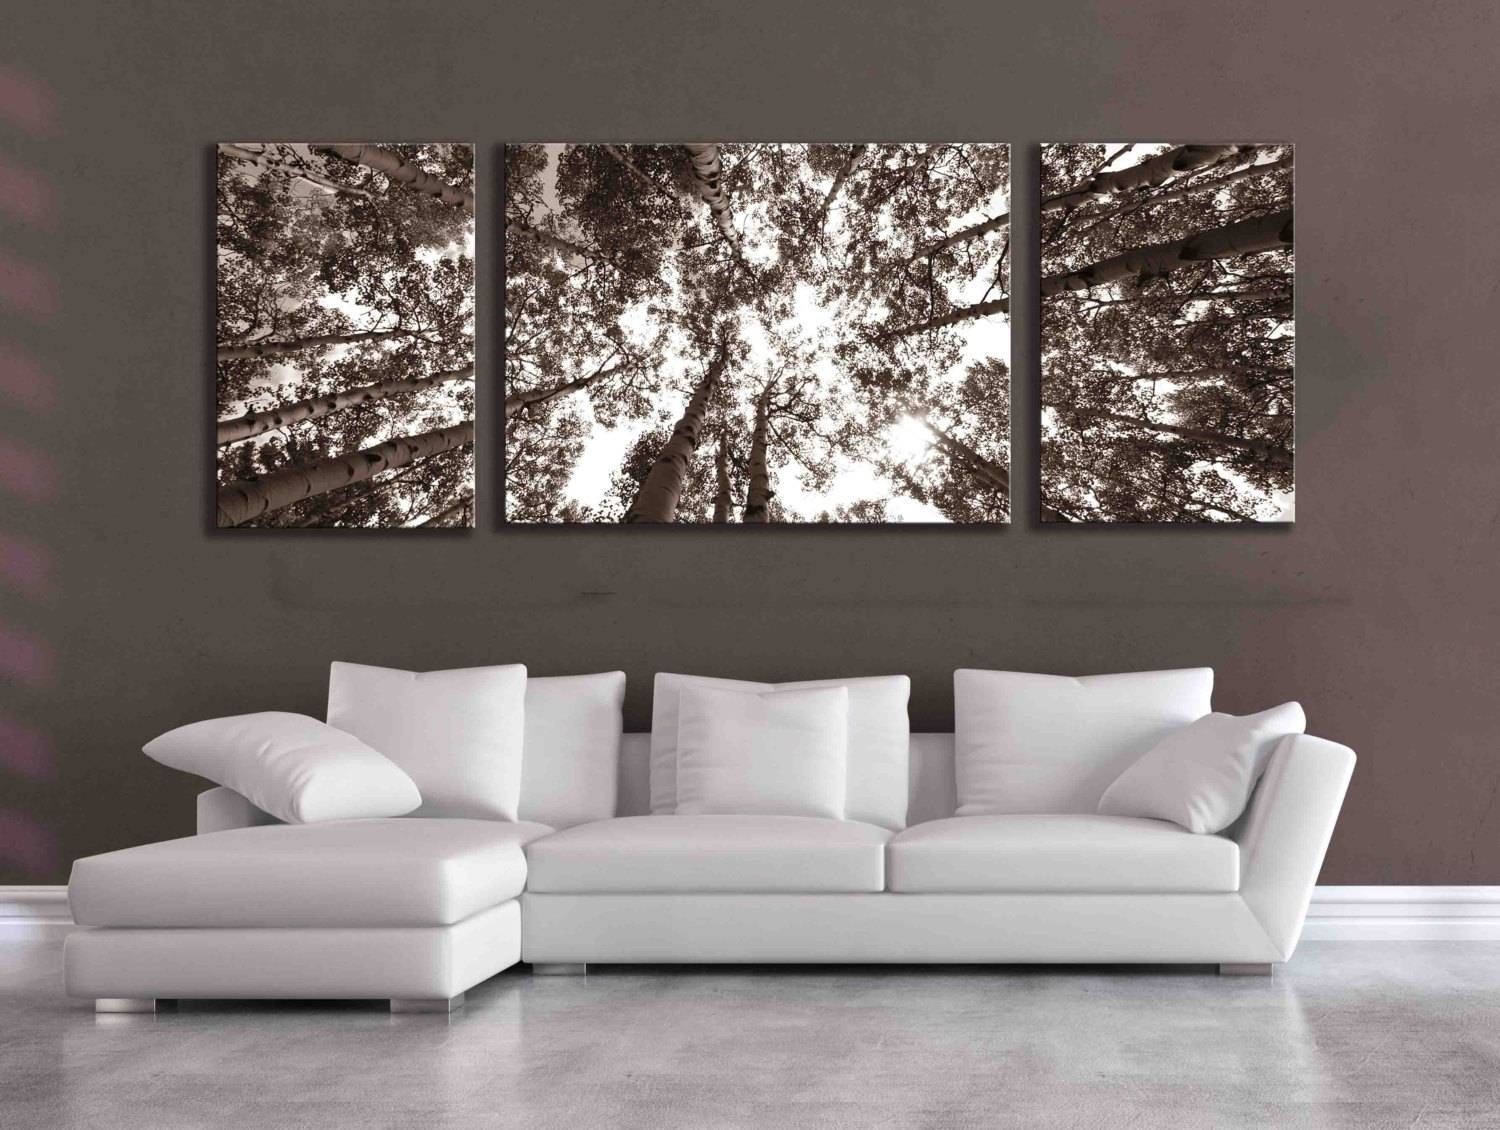 Large Sepia Three Panel Multi Piece Aspen Birch Tree Nature Regarding 2018 Multiple Piece Wall Art (View 17 of 20)